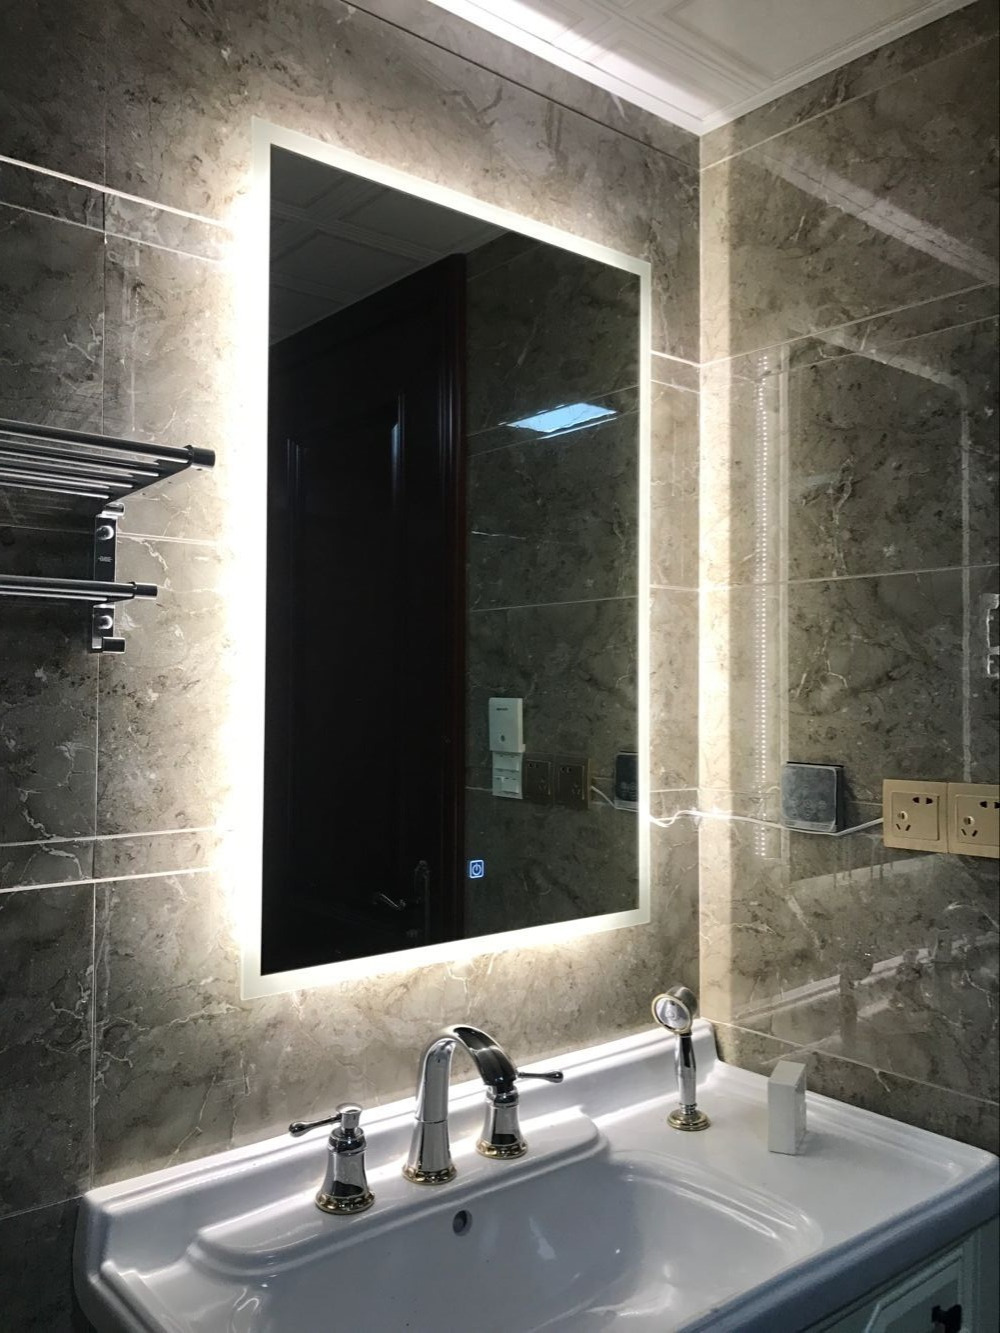 DIYHD Box Diffusers Led Backlit Bathroom Mirror Vanity Square Wall Mount Bathroom Finger Touch Light Mirror 1